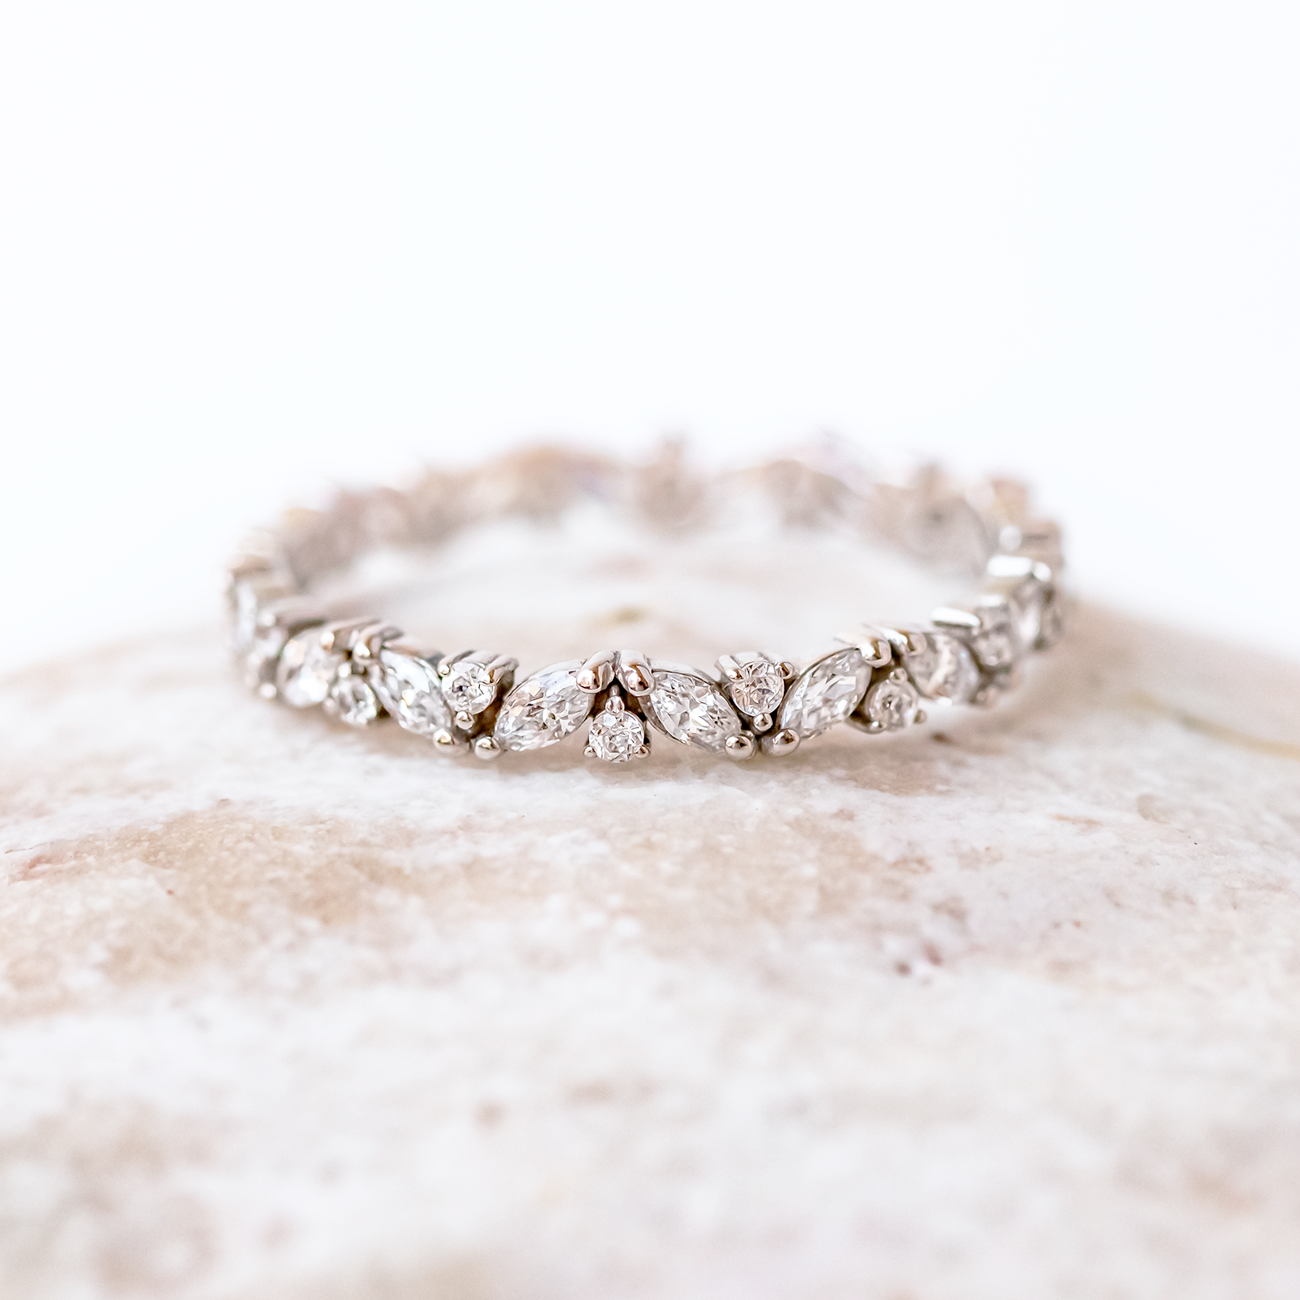 Our Haley diamond wedding band is set eternity style with alternating marquise and round Canadian diamonds.  #diamondweddingband #weddingband #eternity #diamond